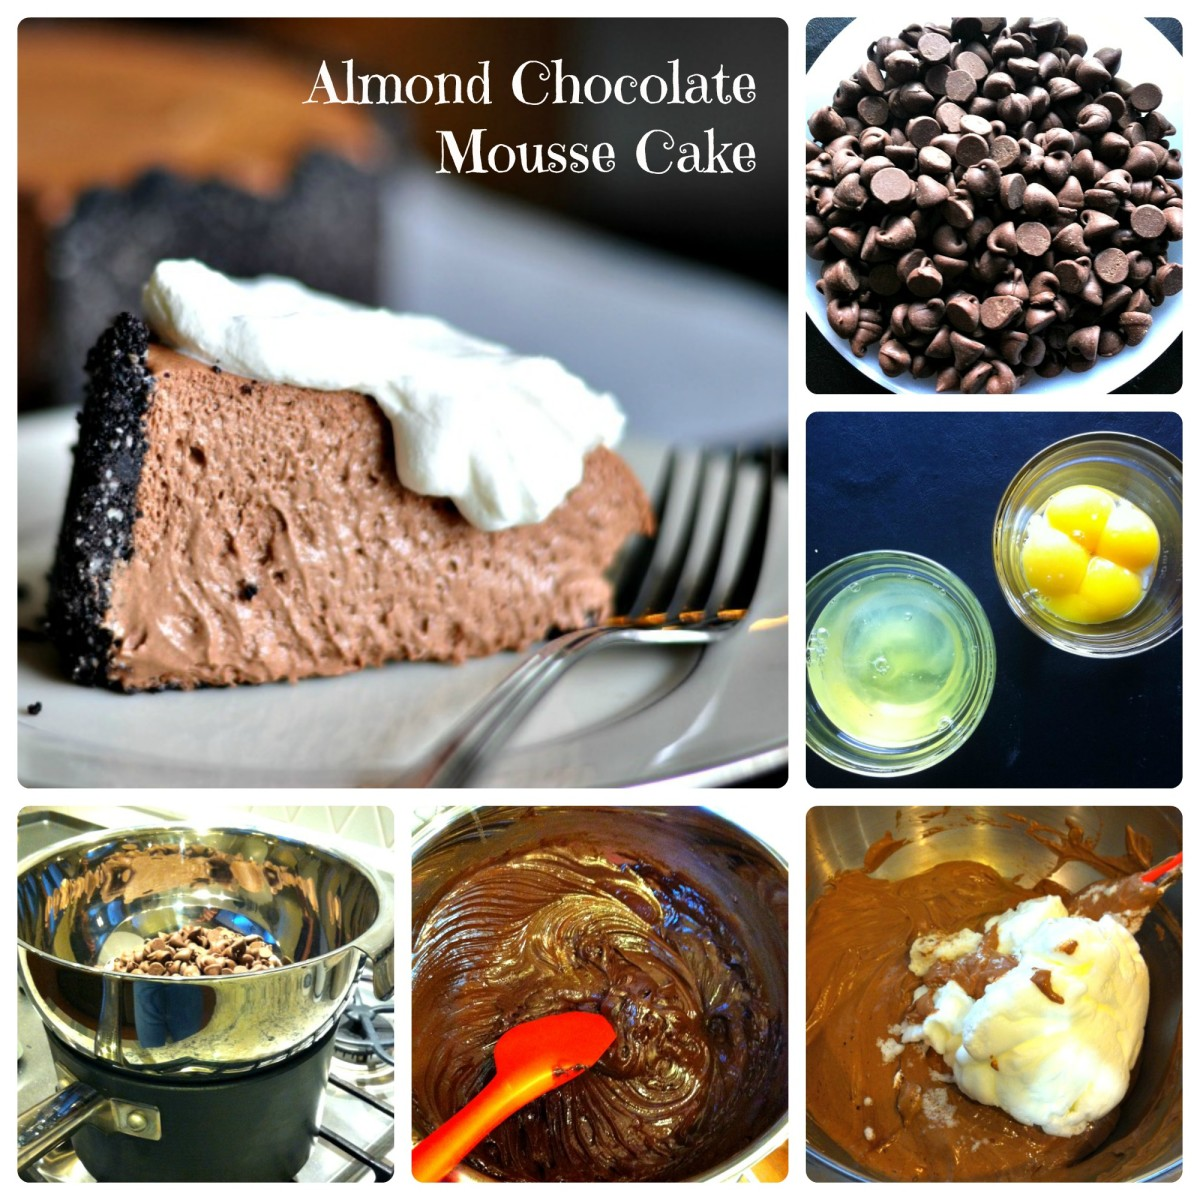 Almond Chocolate Mousse Cake Steps